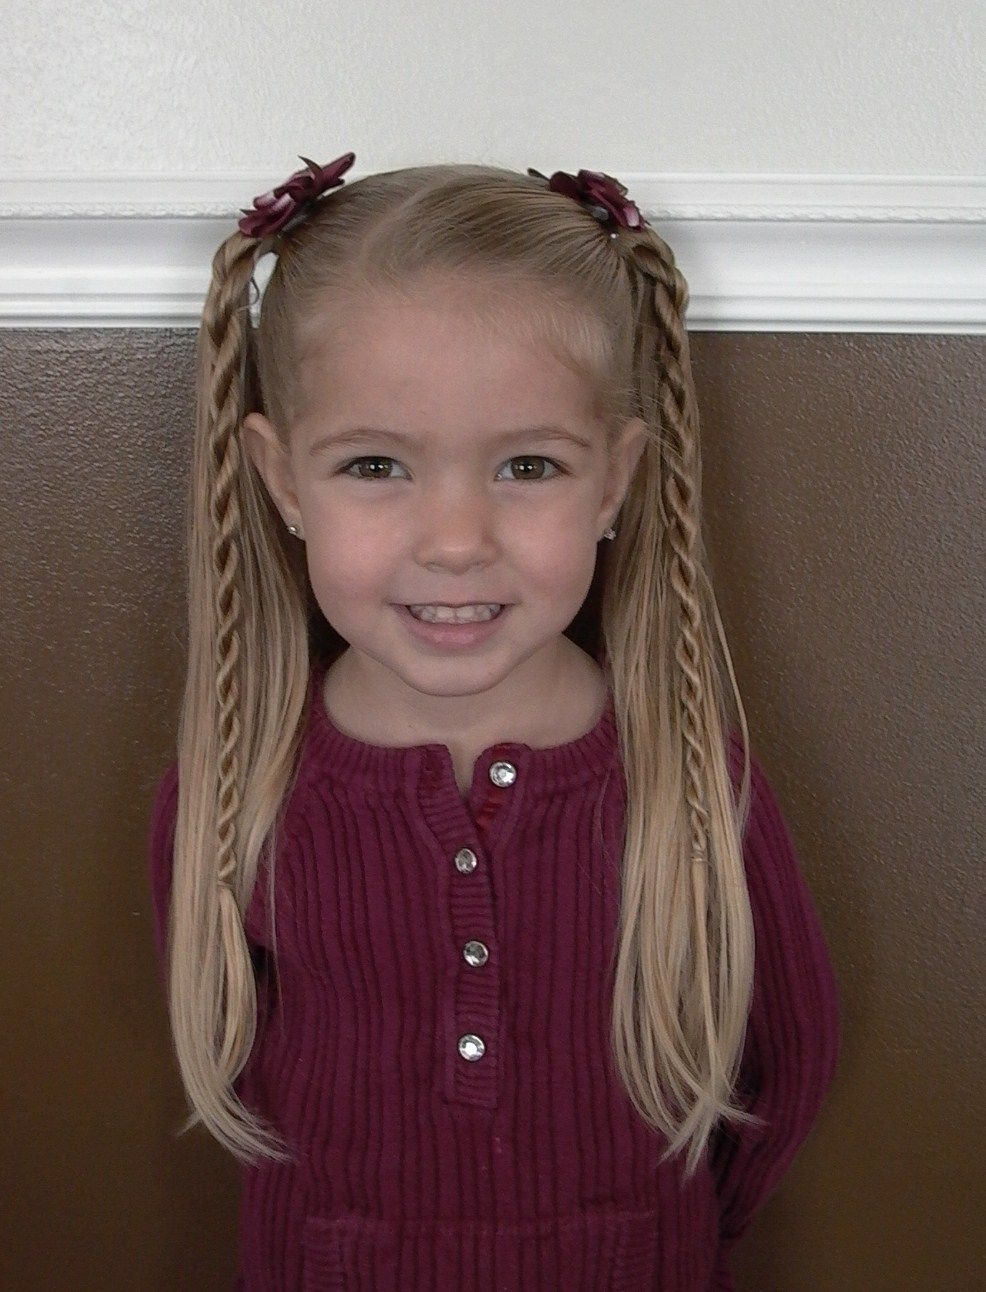 Boy haircuts age 7  girls hairstyles for back to school  hairstyles for bridgette